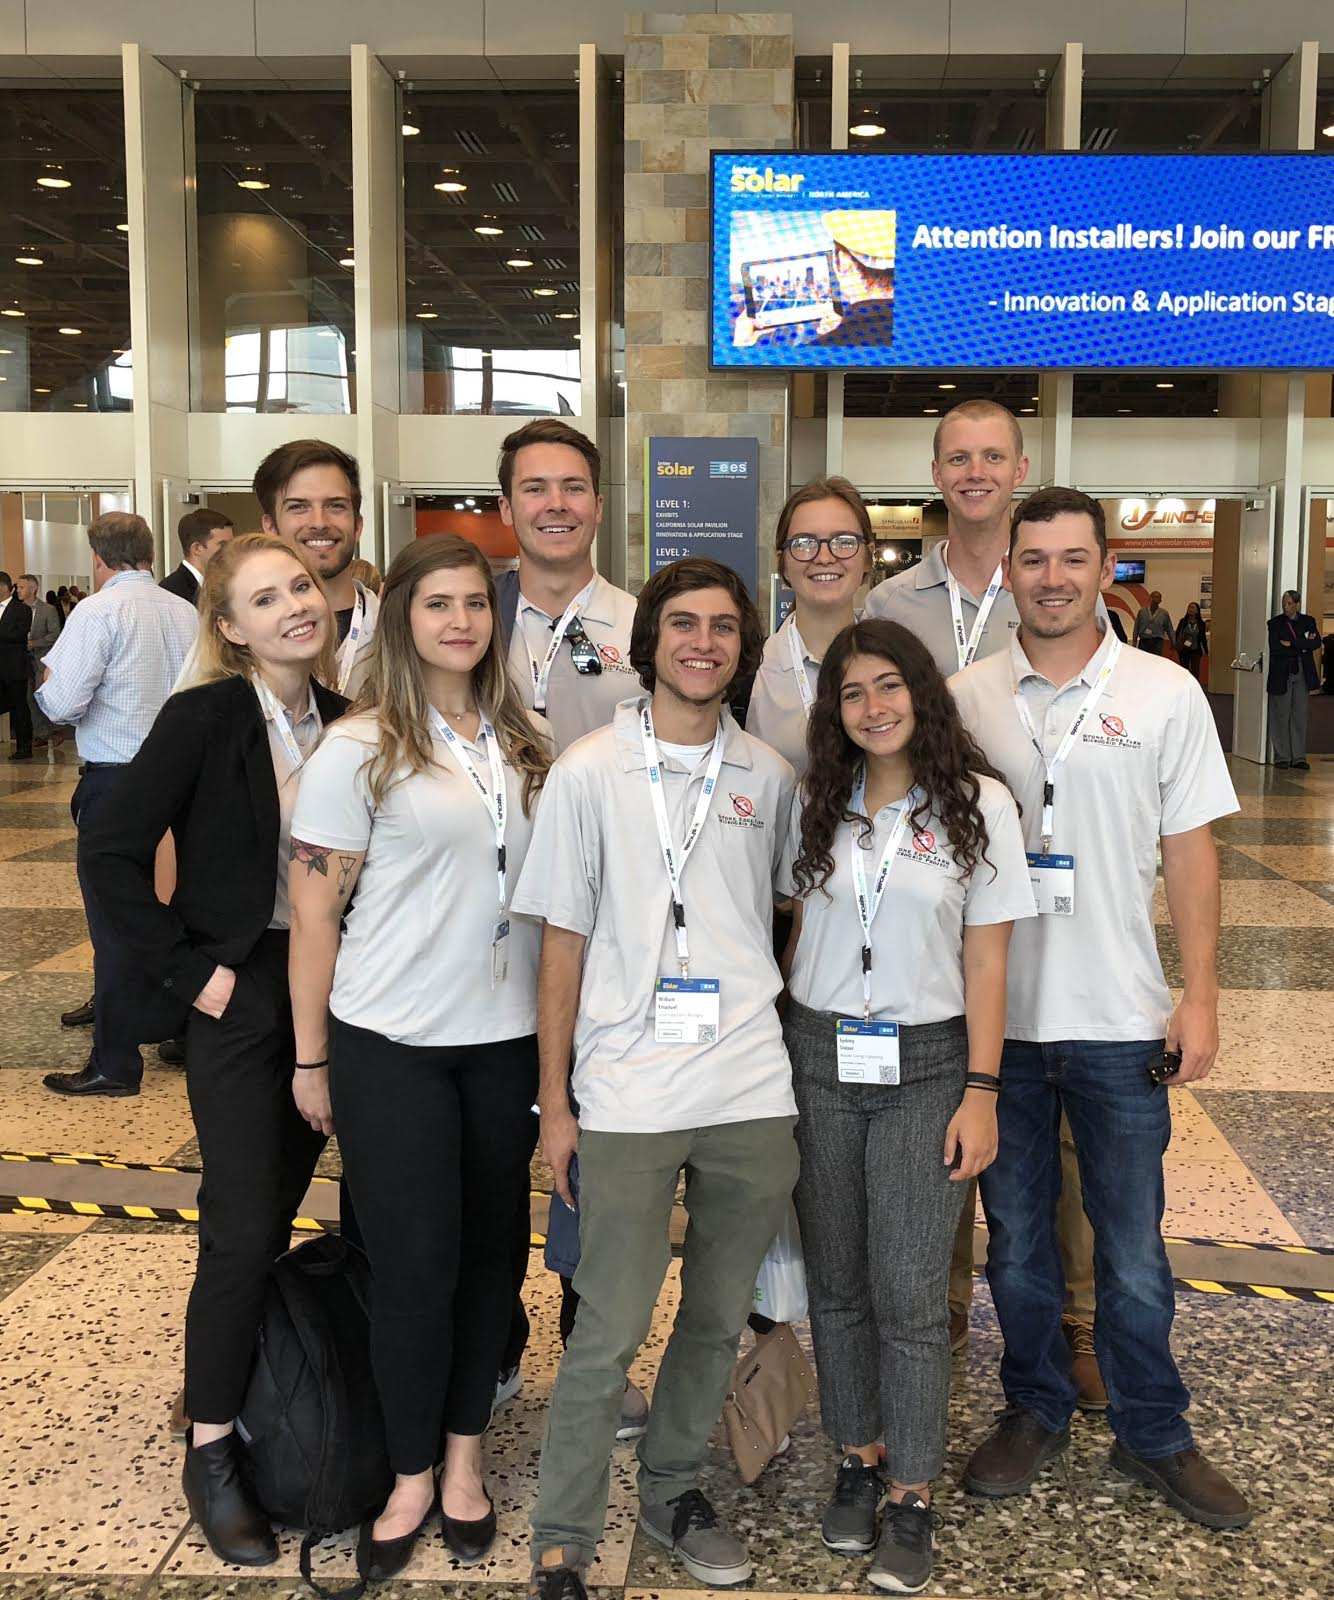 The Summer 2017 intern team at the annual Intersolar convention.